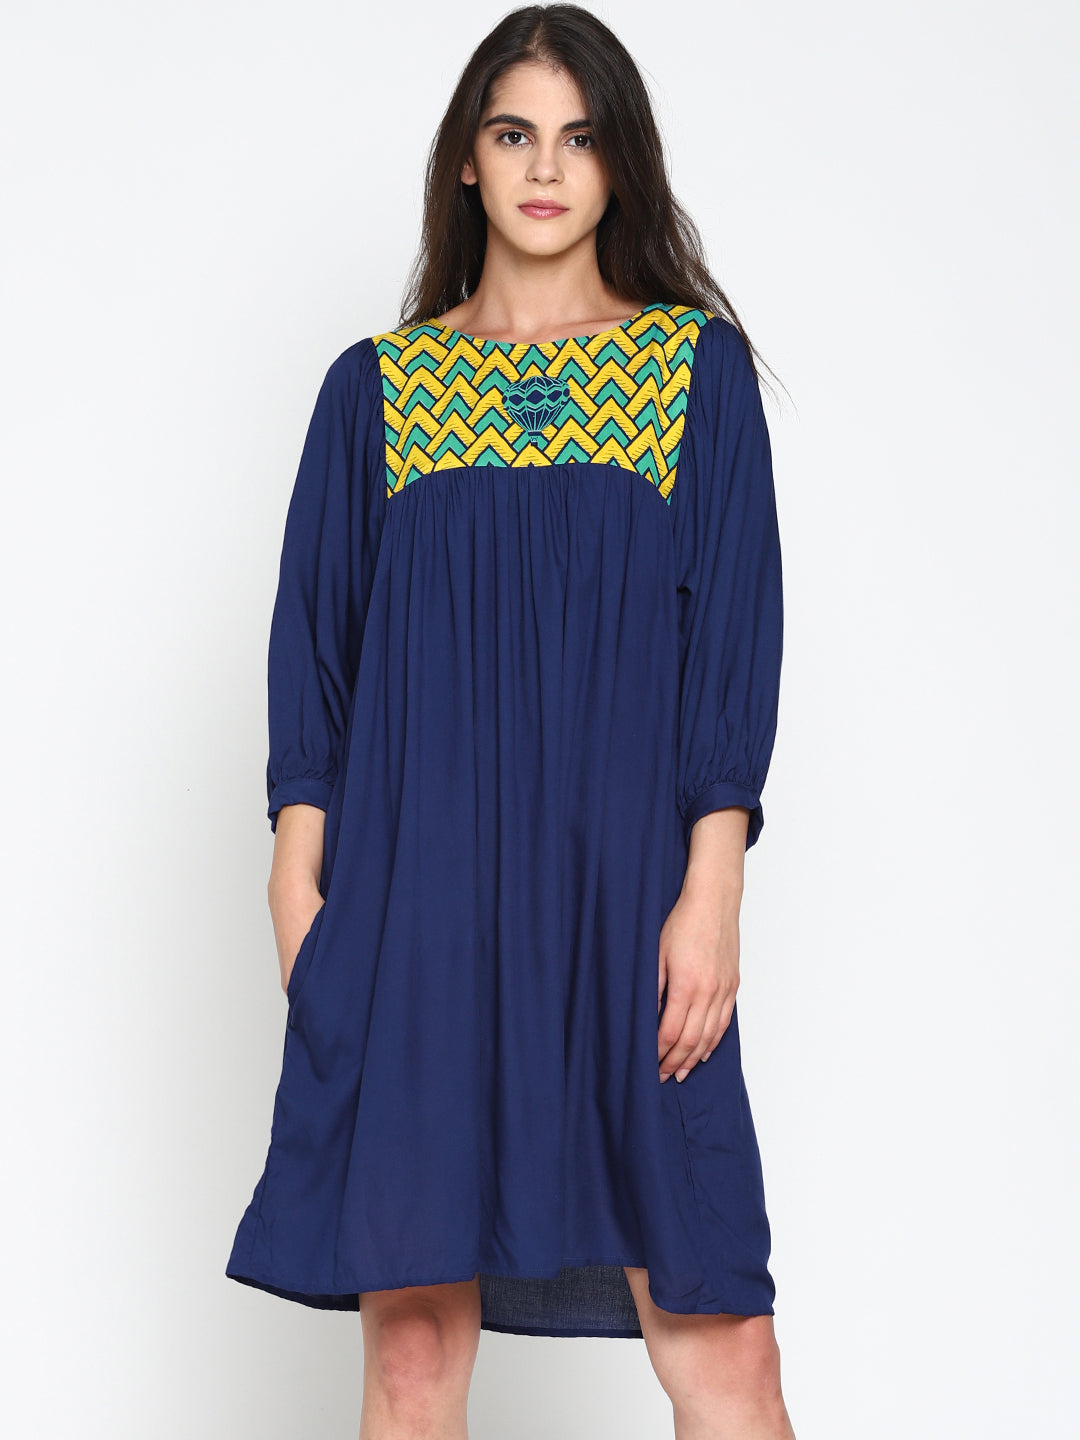 Blue Gathered Dress With Printed Yoke | Untung